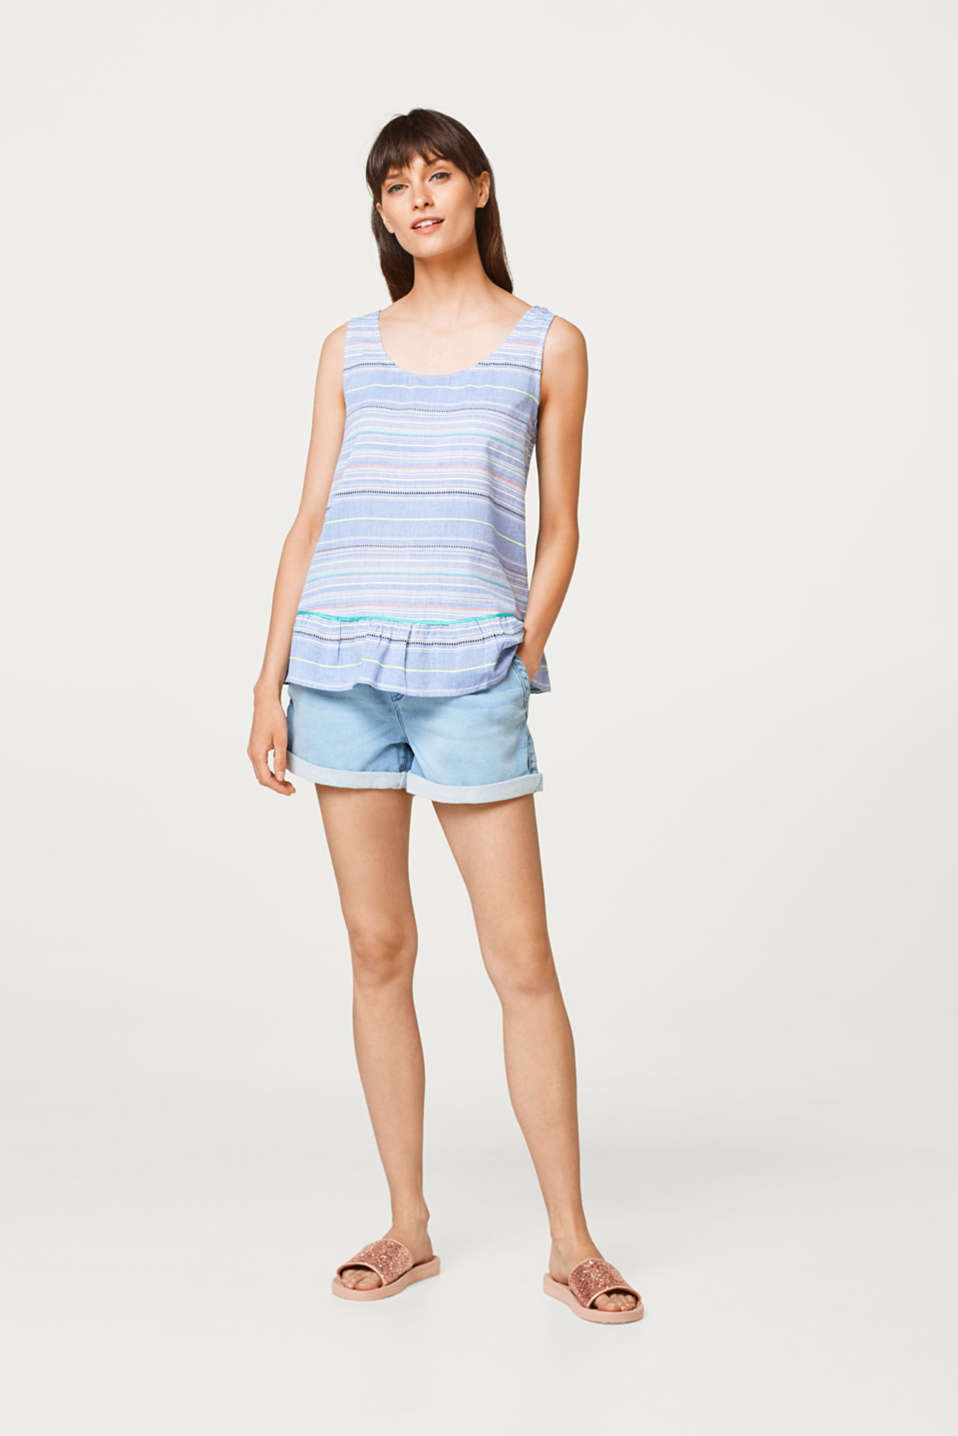 Esprit - Blouse top with multi-coloured stripes and a peplum